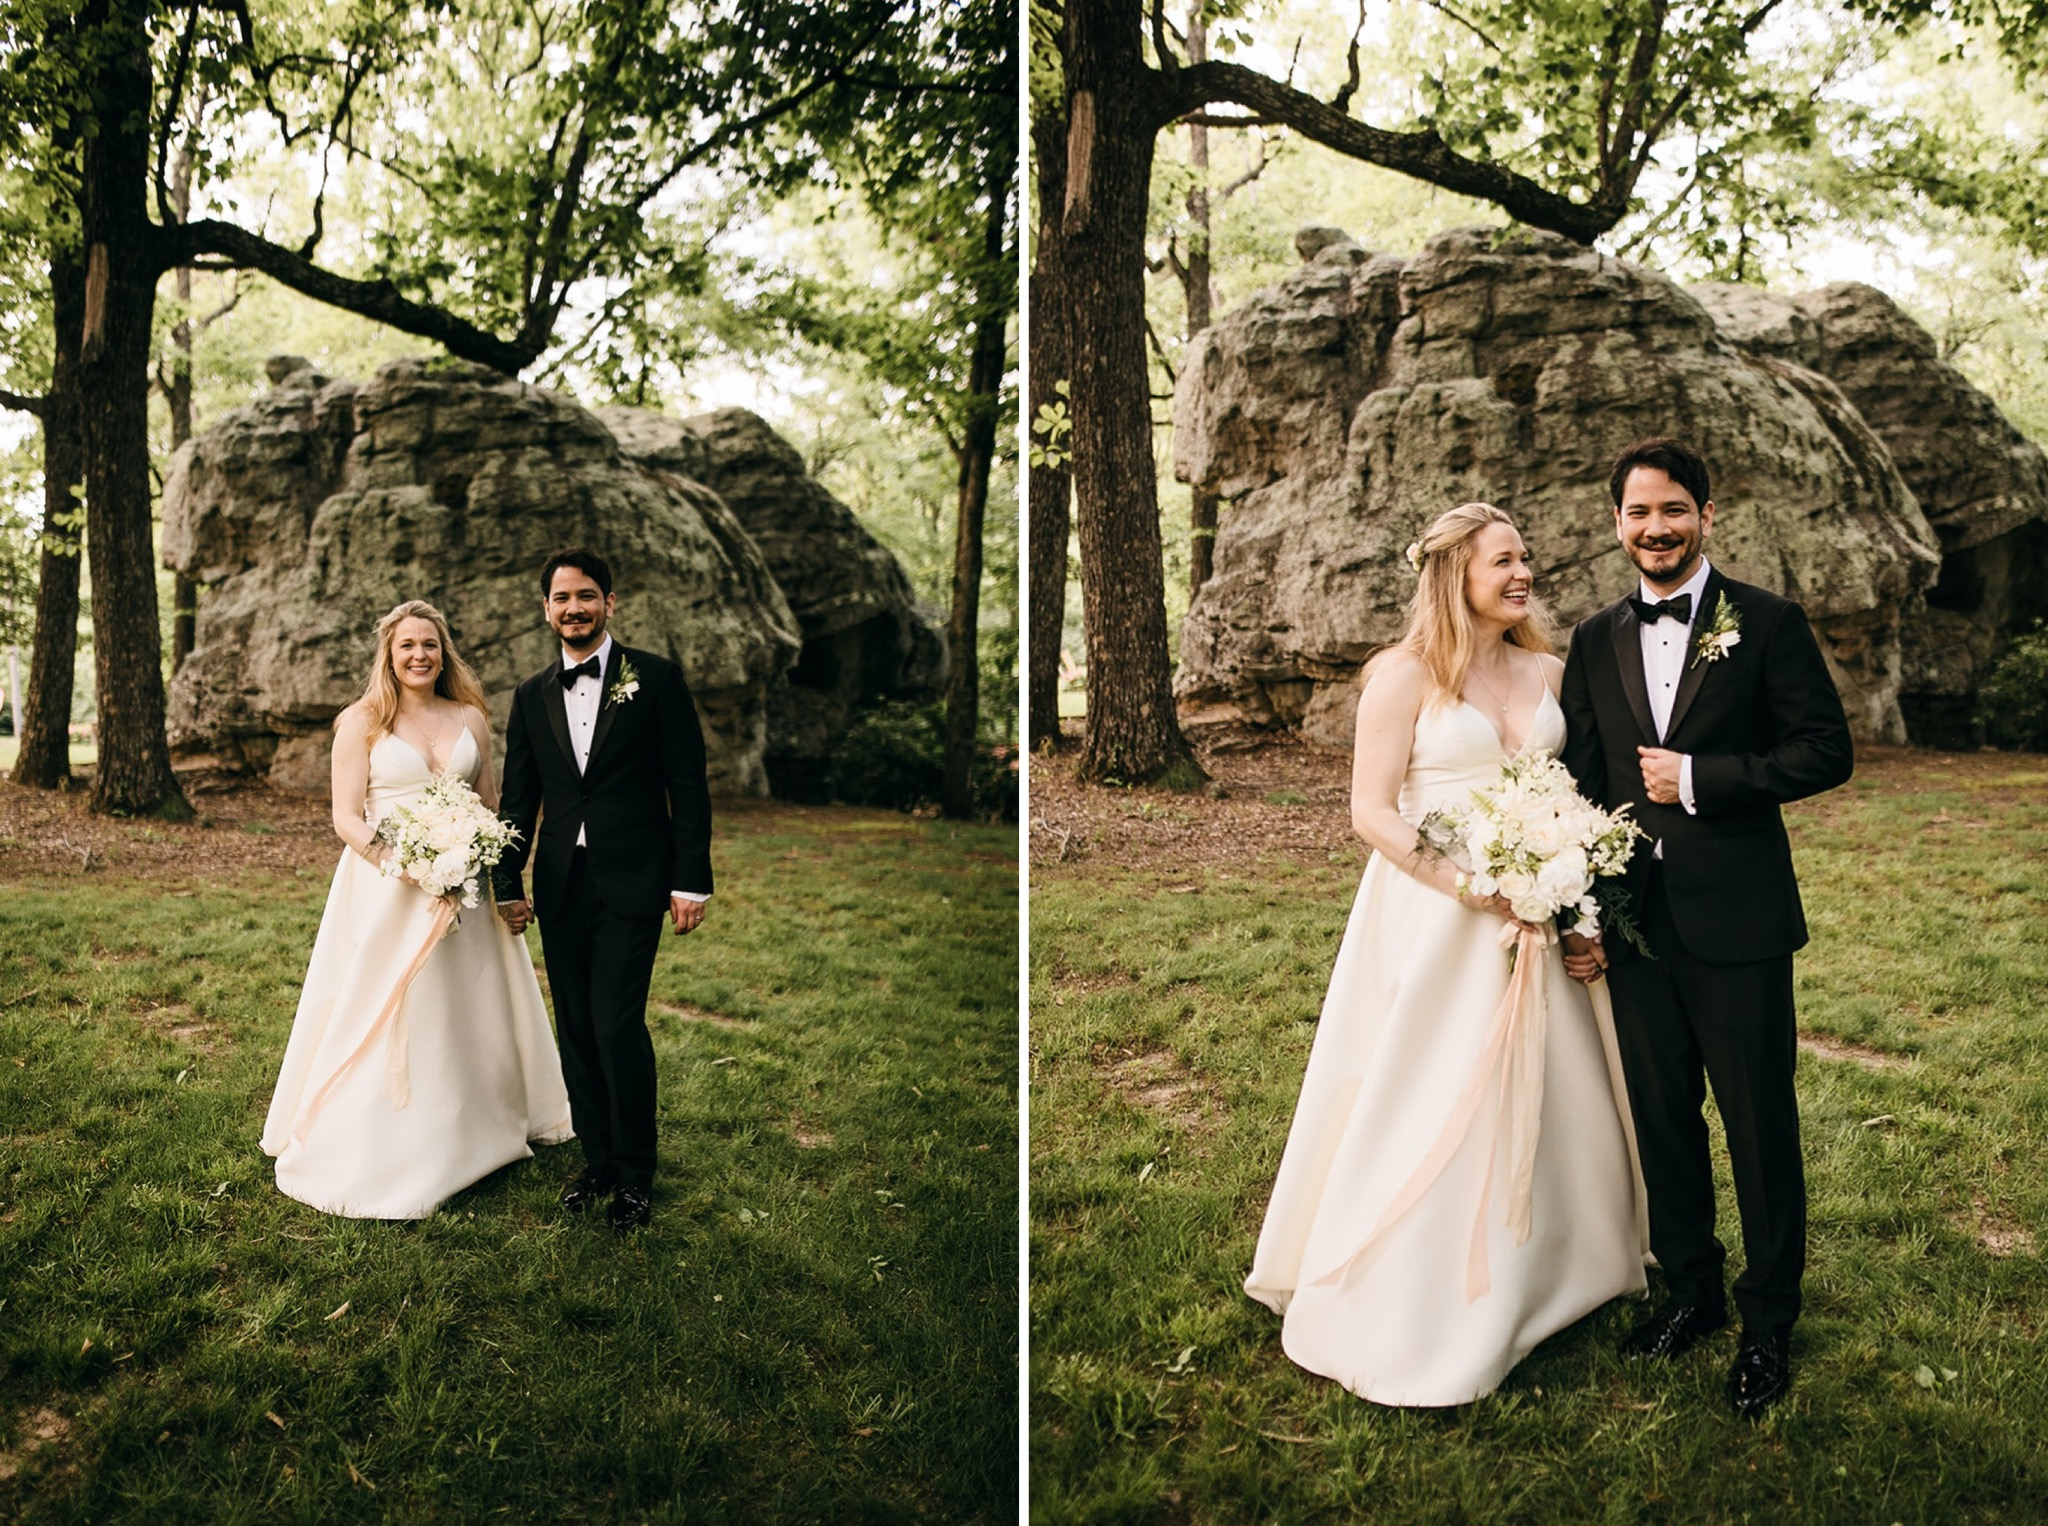 bride and groom walk in grassy field near large rocks on Lookout Mountain near Chattanooga